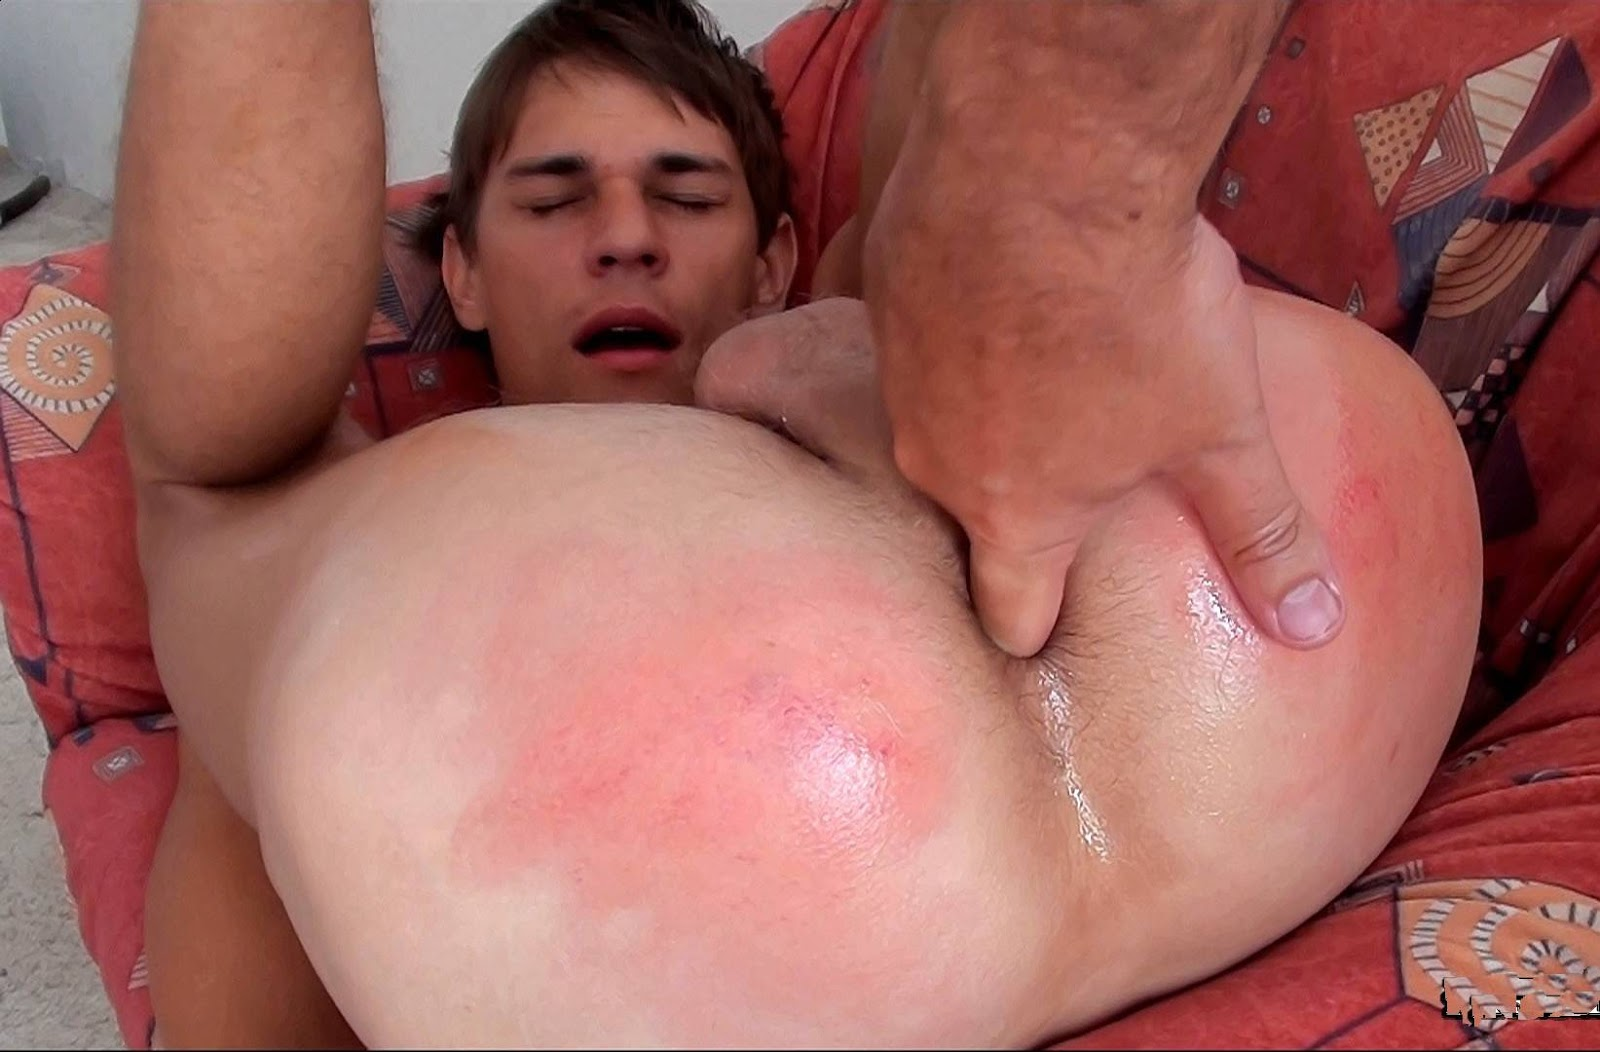 Fat gay boy fucking daddy first time the 6